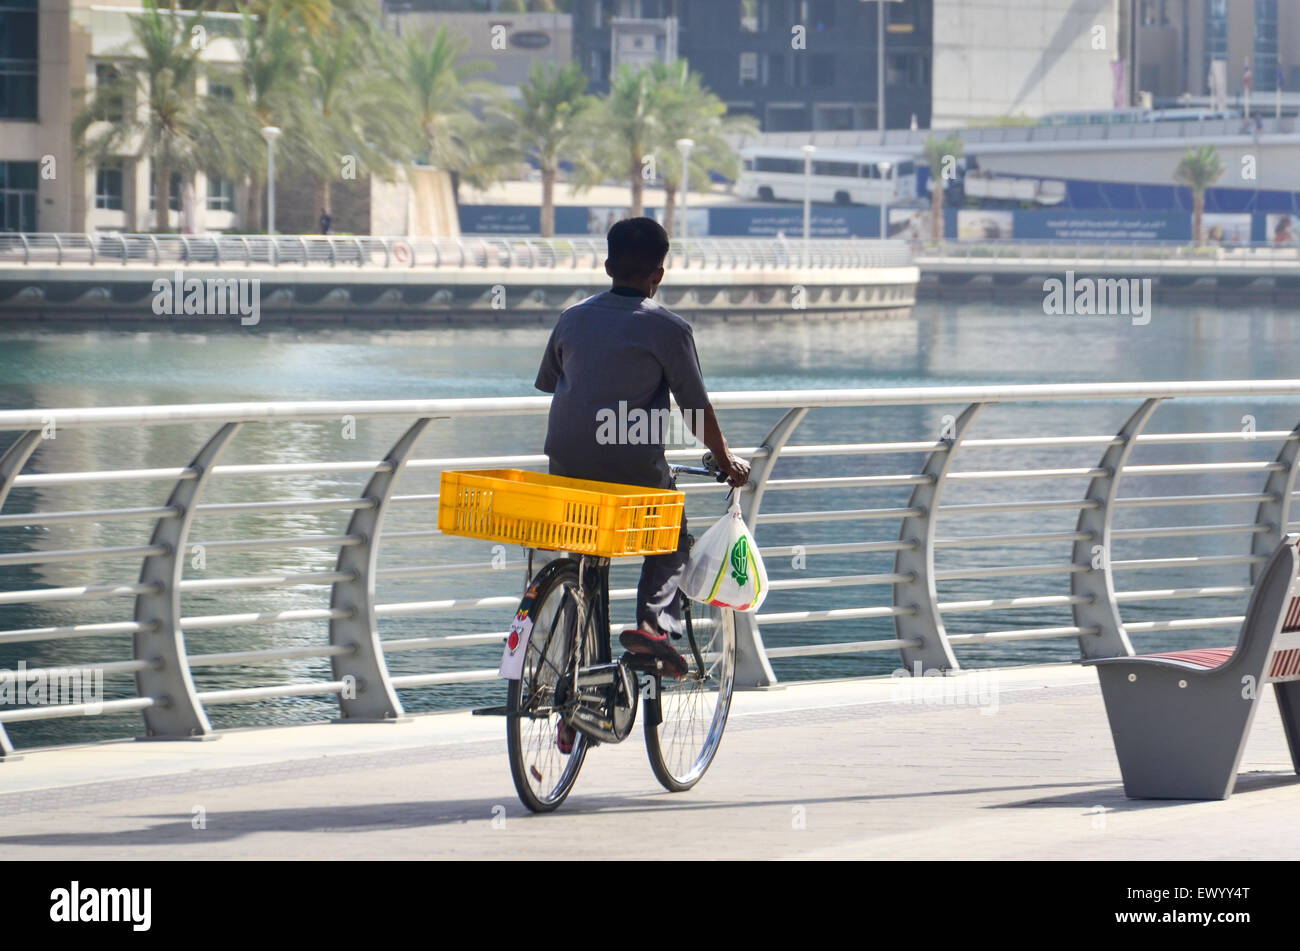 Immigrant worker cycling on the empty promenade of the Dubai Marina early morning - Stock Image